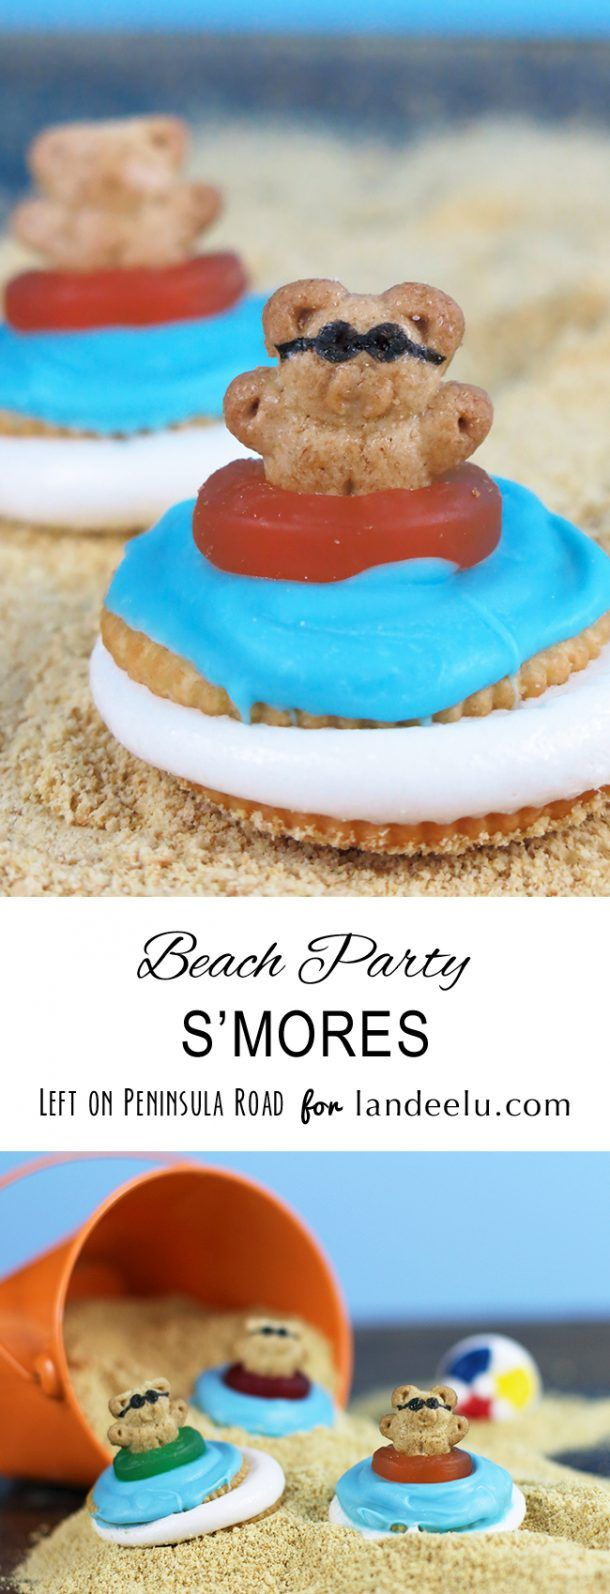 Teddy Grahams Beach Party S'mores. Easy summer food craft!